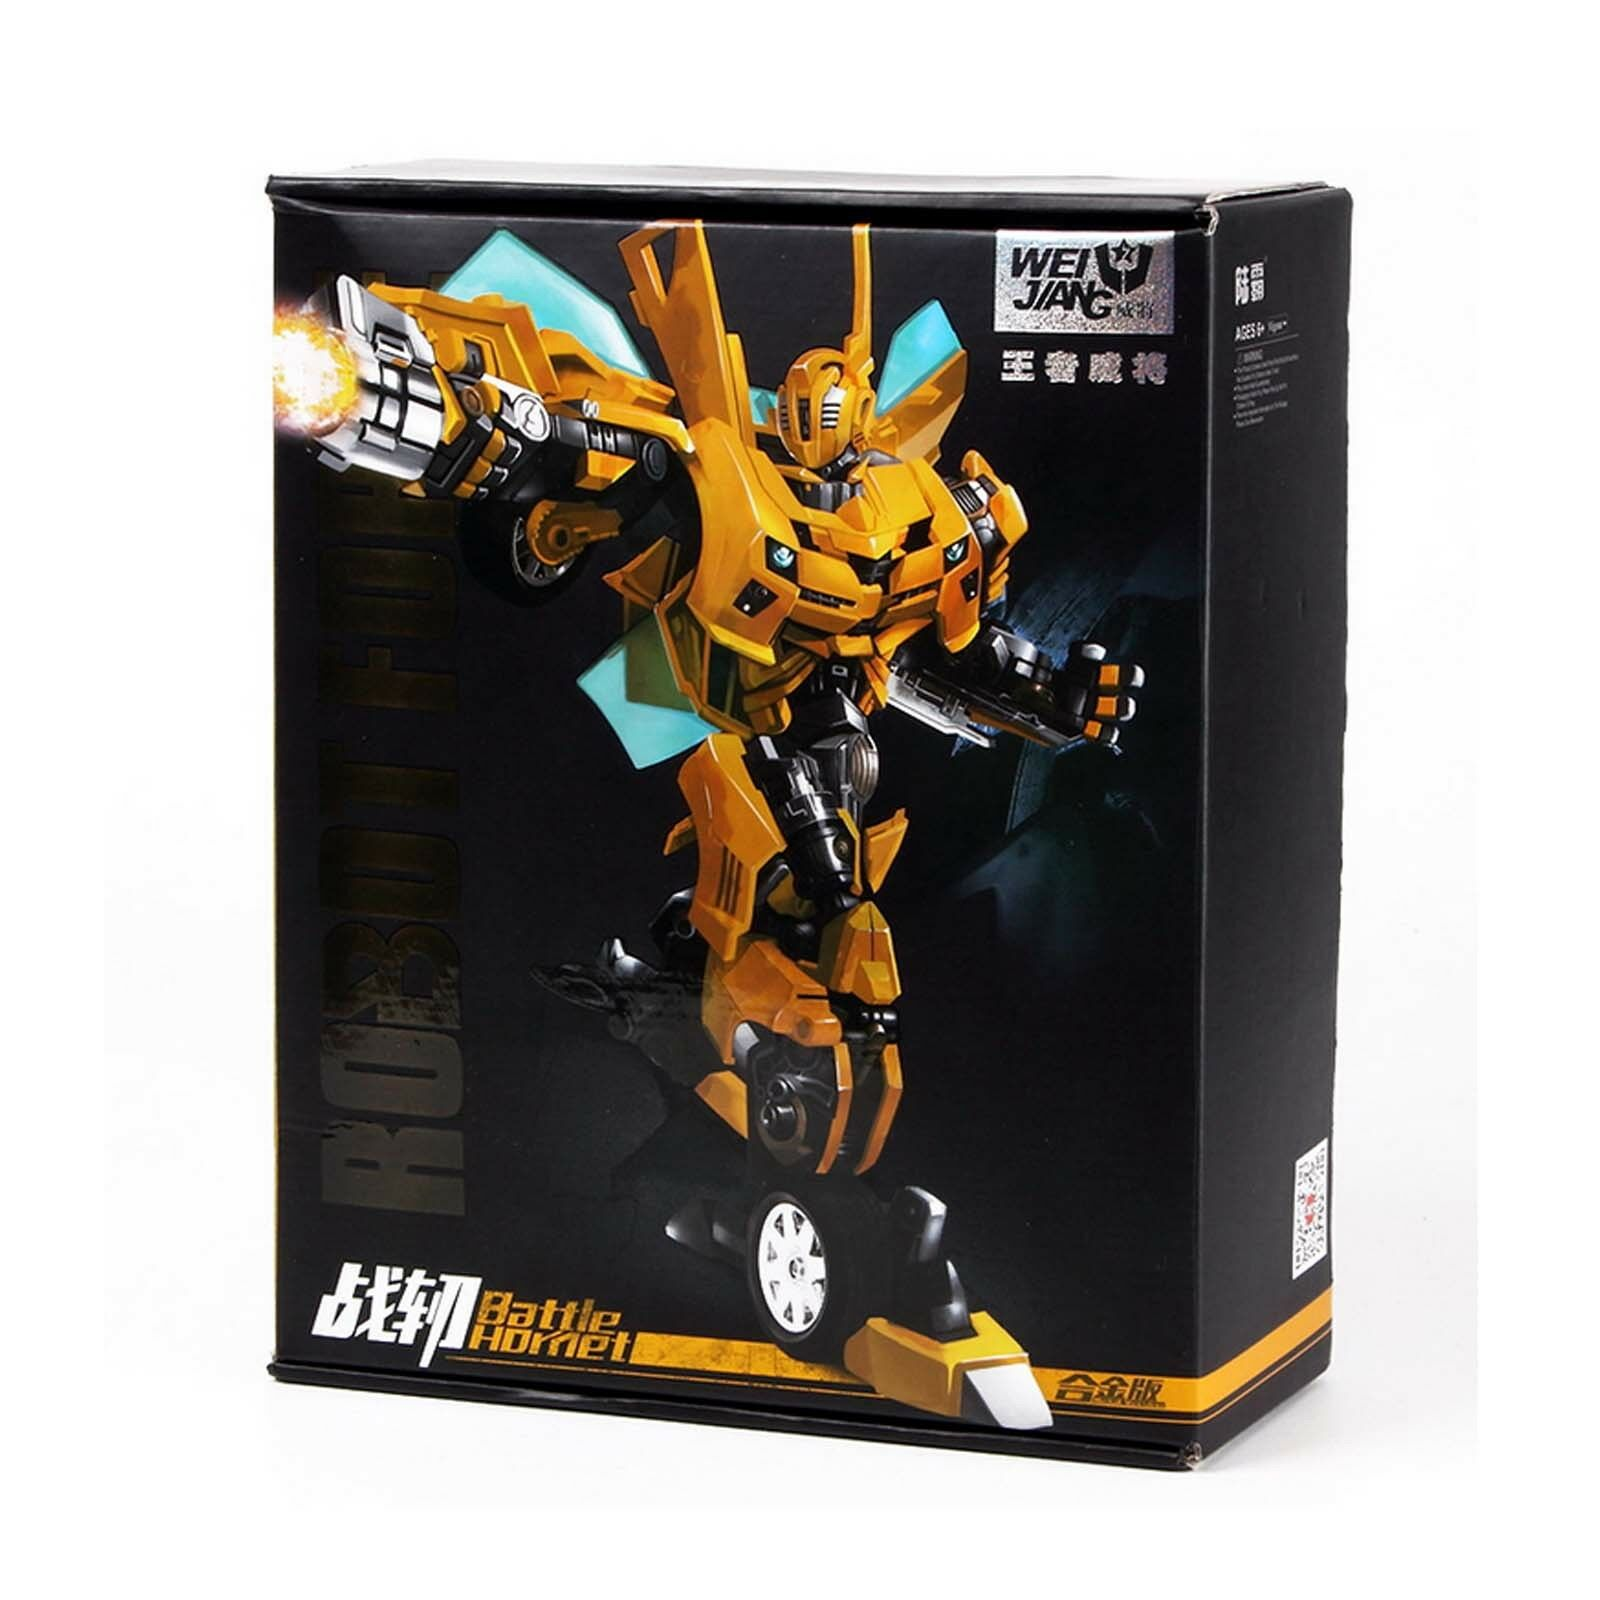 Transformers M03 WEIJIANG WJ Battle Hornet Bumblebee Metal Gift Kids Collection